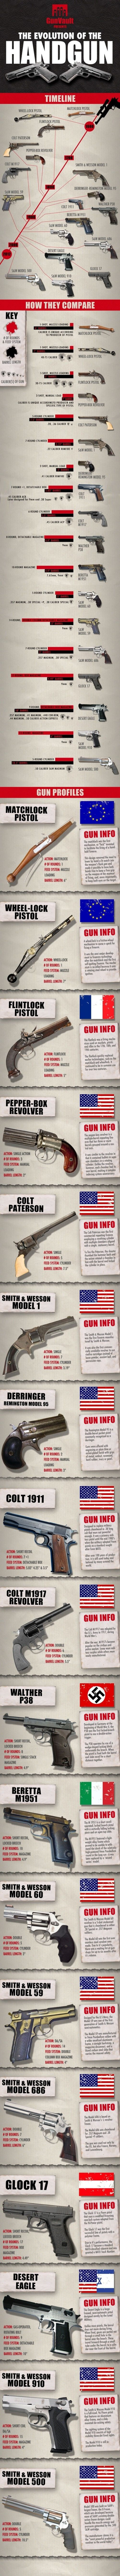 The Evolution of Handguns!  Check out www.hankeringforhistory.com for more!